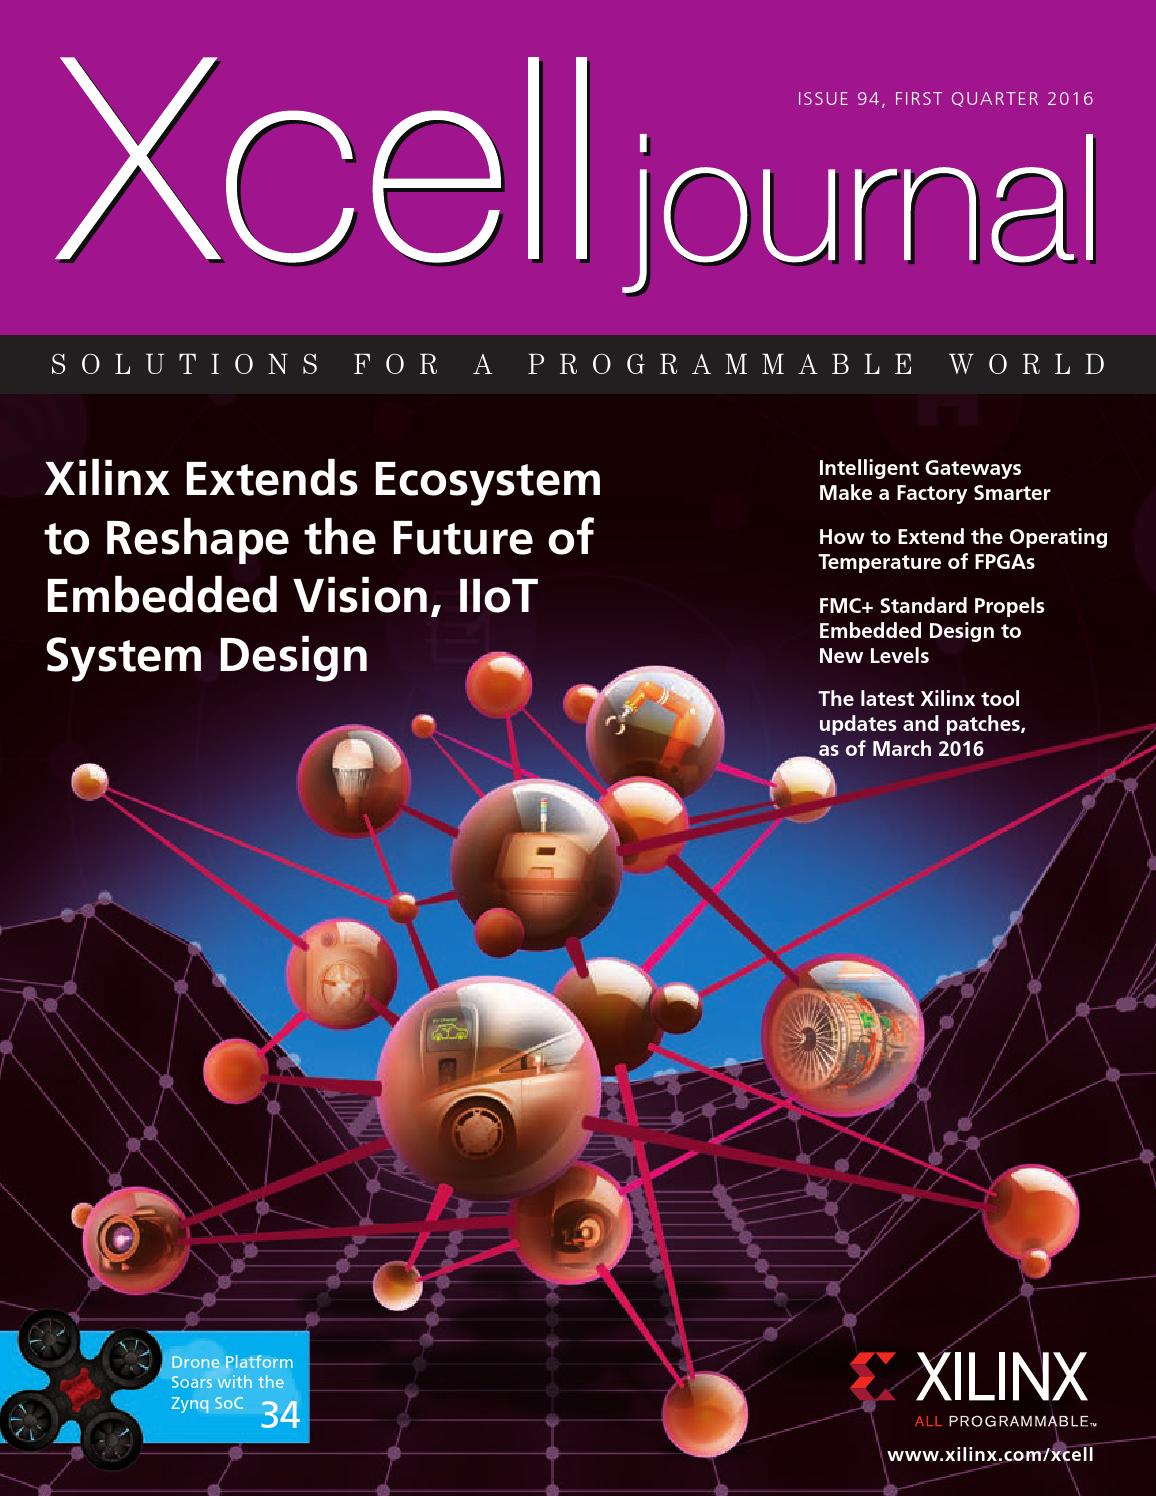 Xcell Journal Issue 94 By Xilinx Publications Issuu Master Slave Switch Eeweb Community